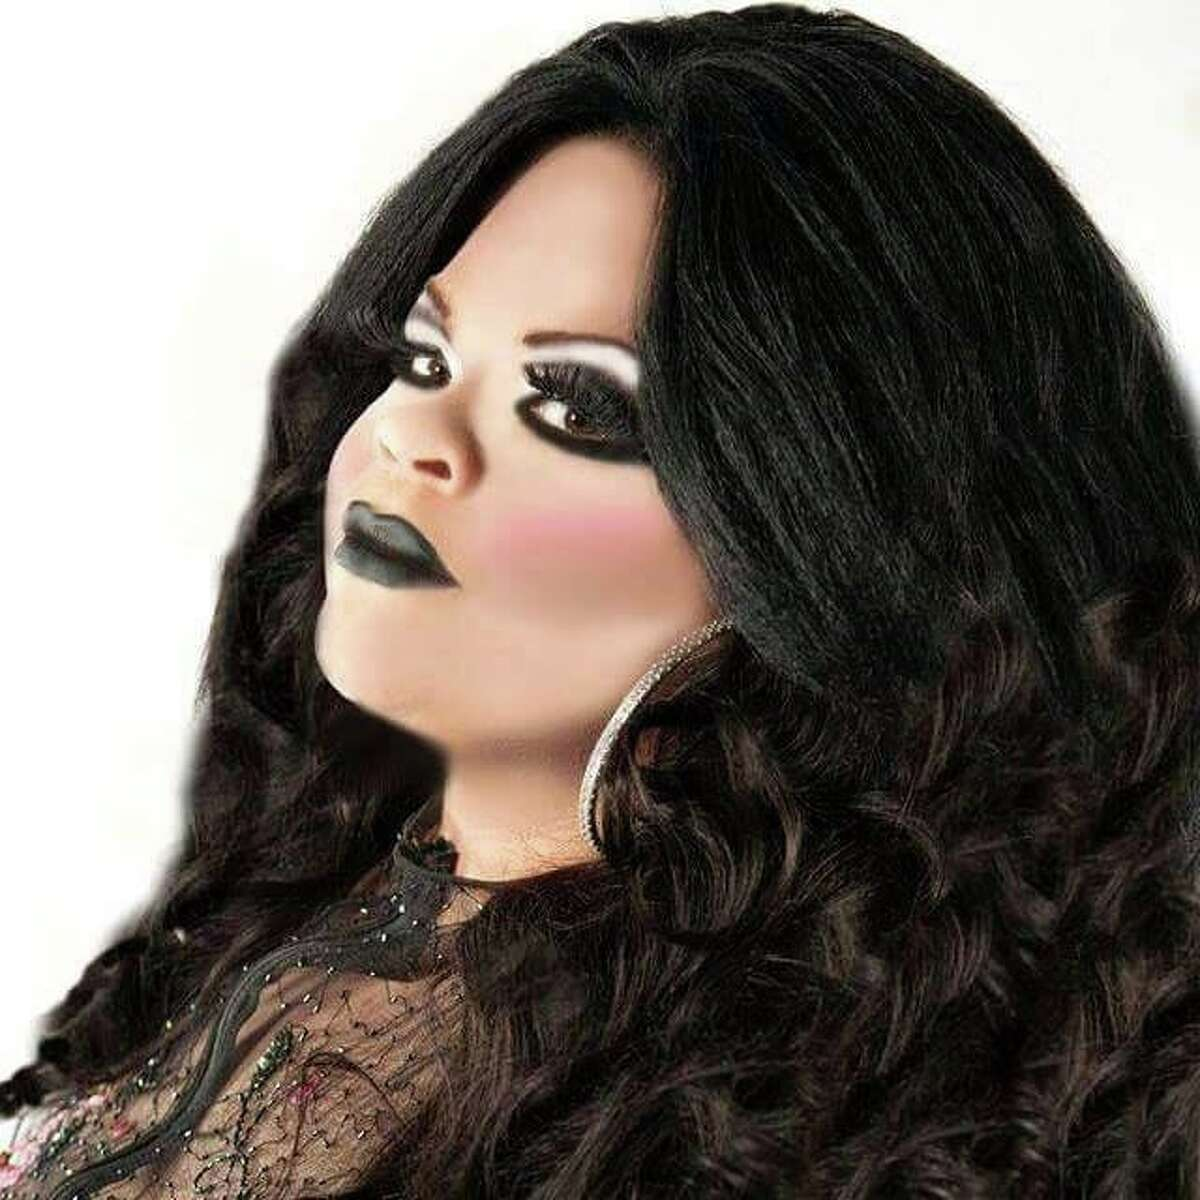 Stacy Layne Matthews Season 3 The queen deserves a crown, henny. Seriously, SLM is hilarious and fierce.